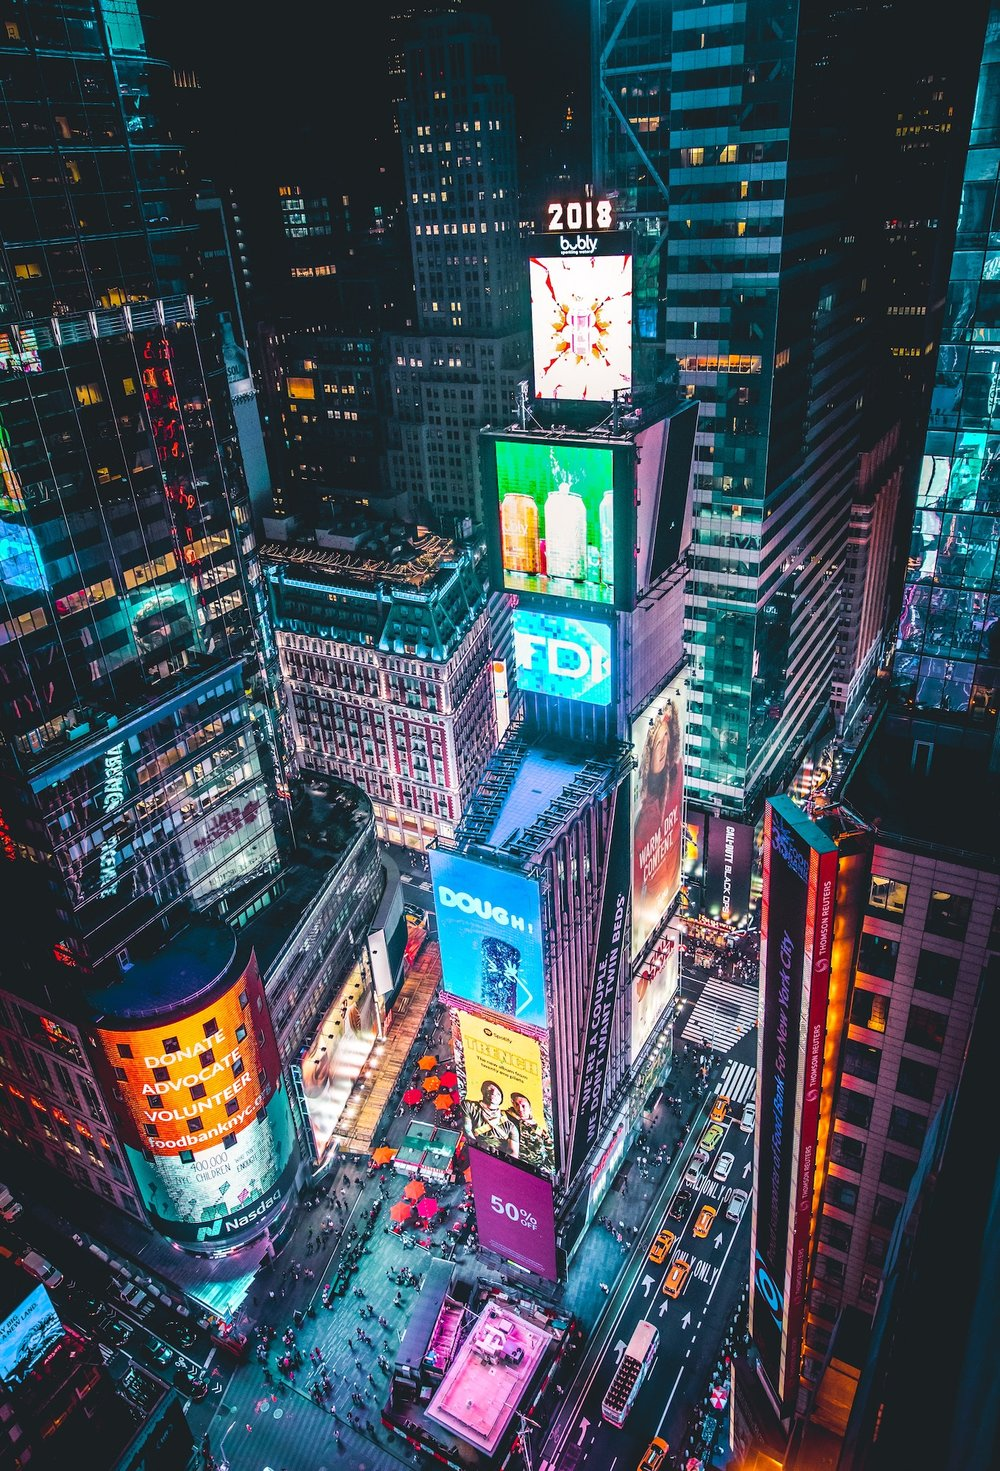 Times Square - Data Processing engine